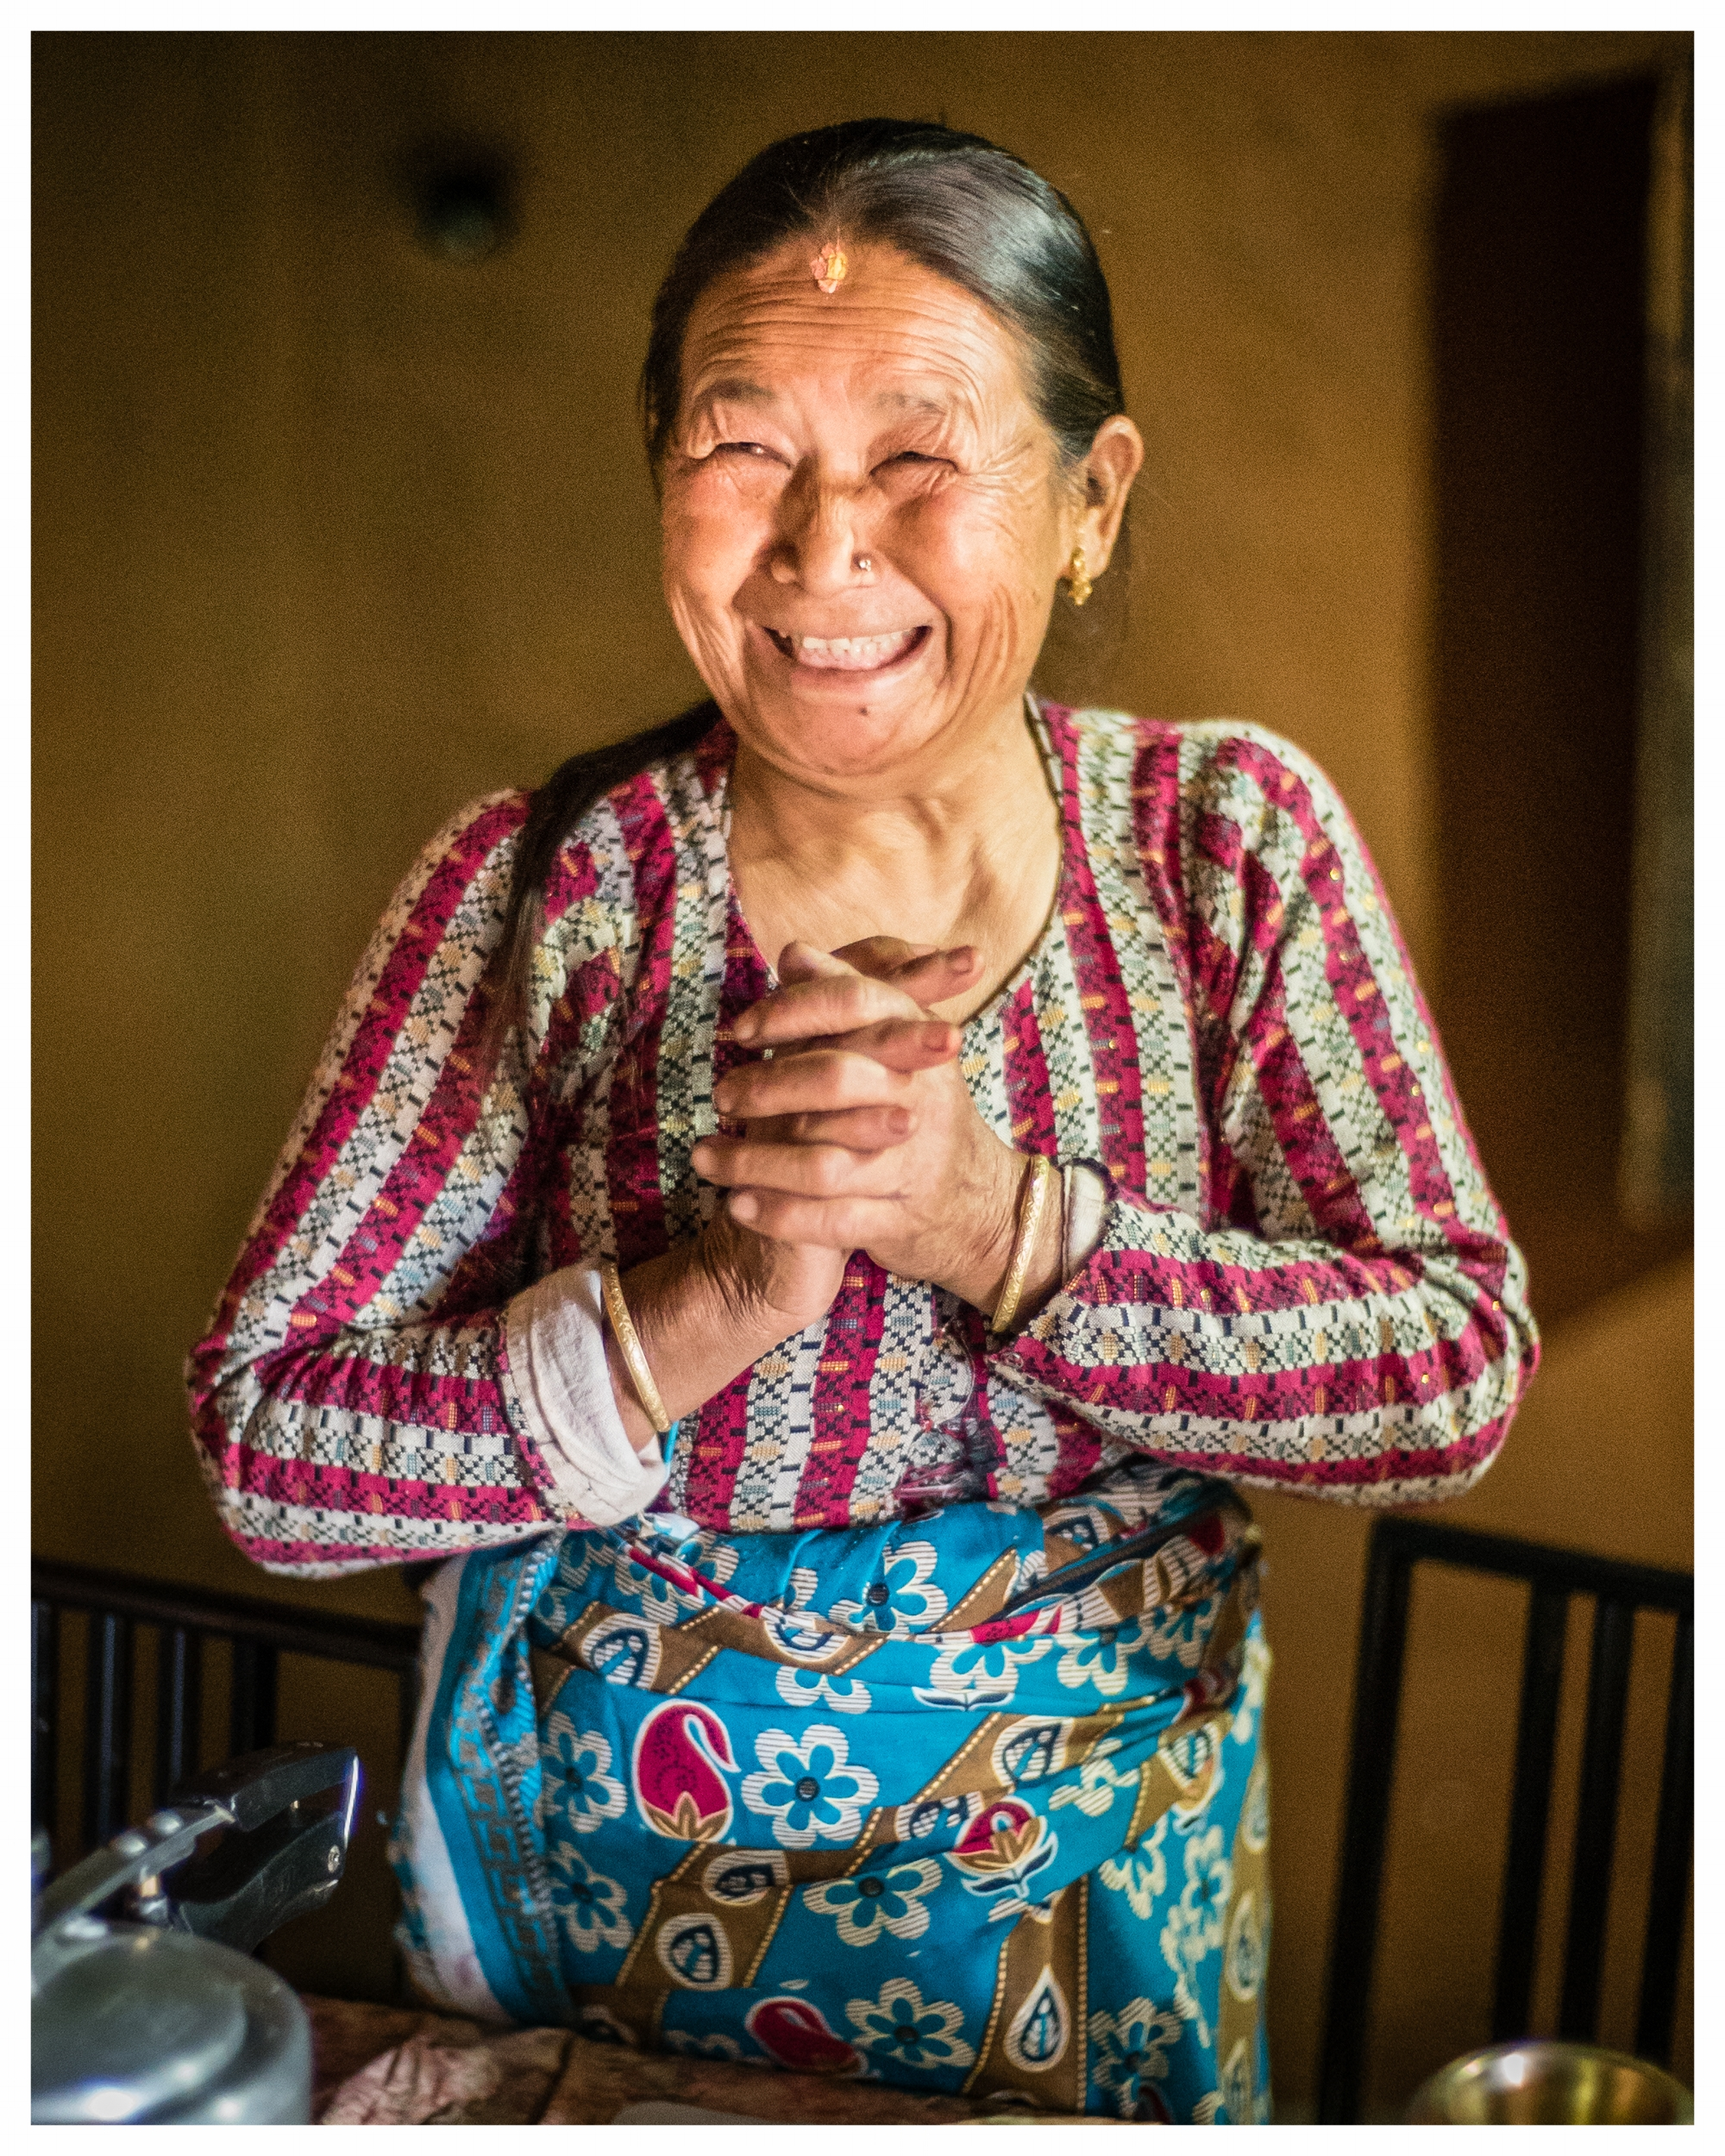 Bhagwati Thapa, who suffers with lymphatic filariasis, invites us to join her for tea. Bungmati, Nepal. Photo © Marcus Perkins